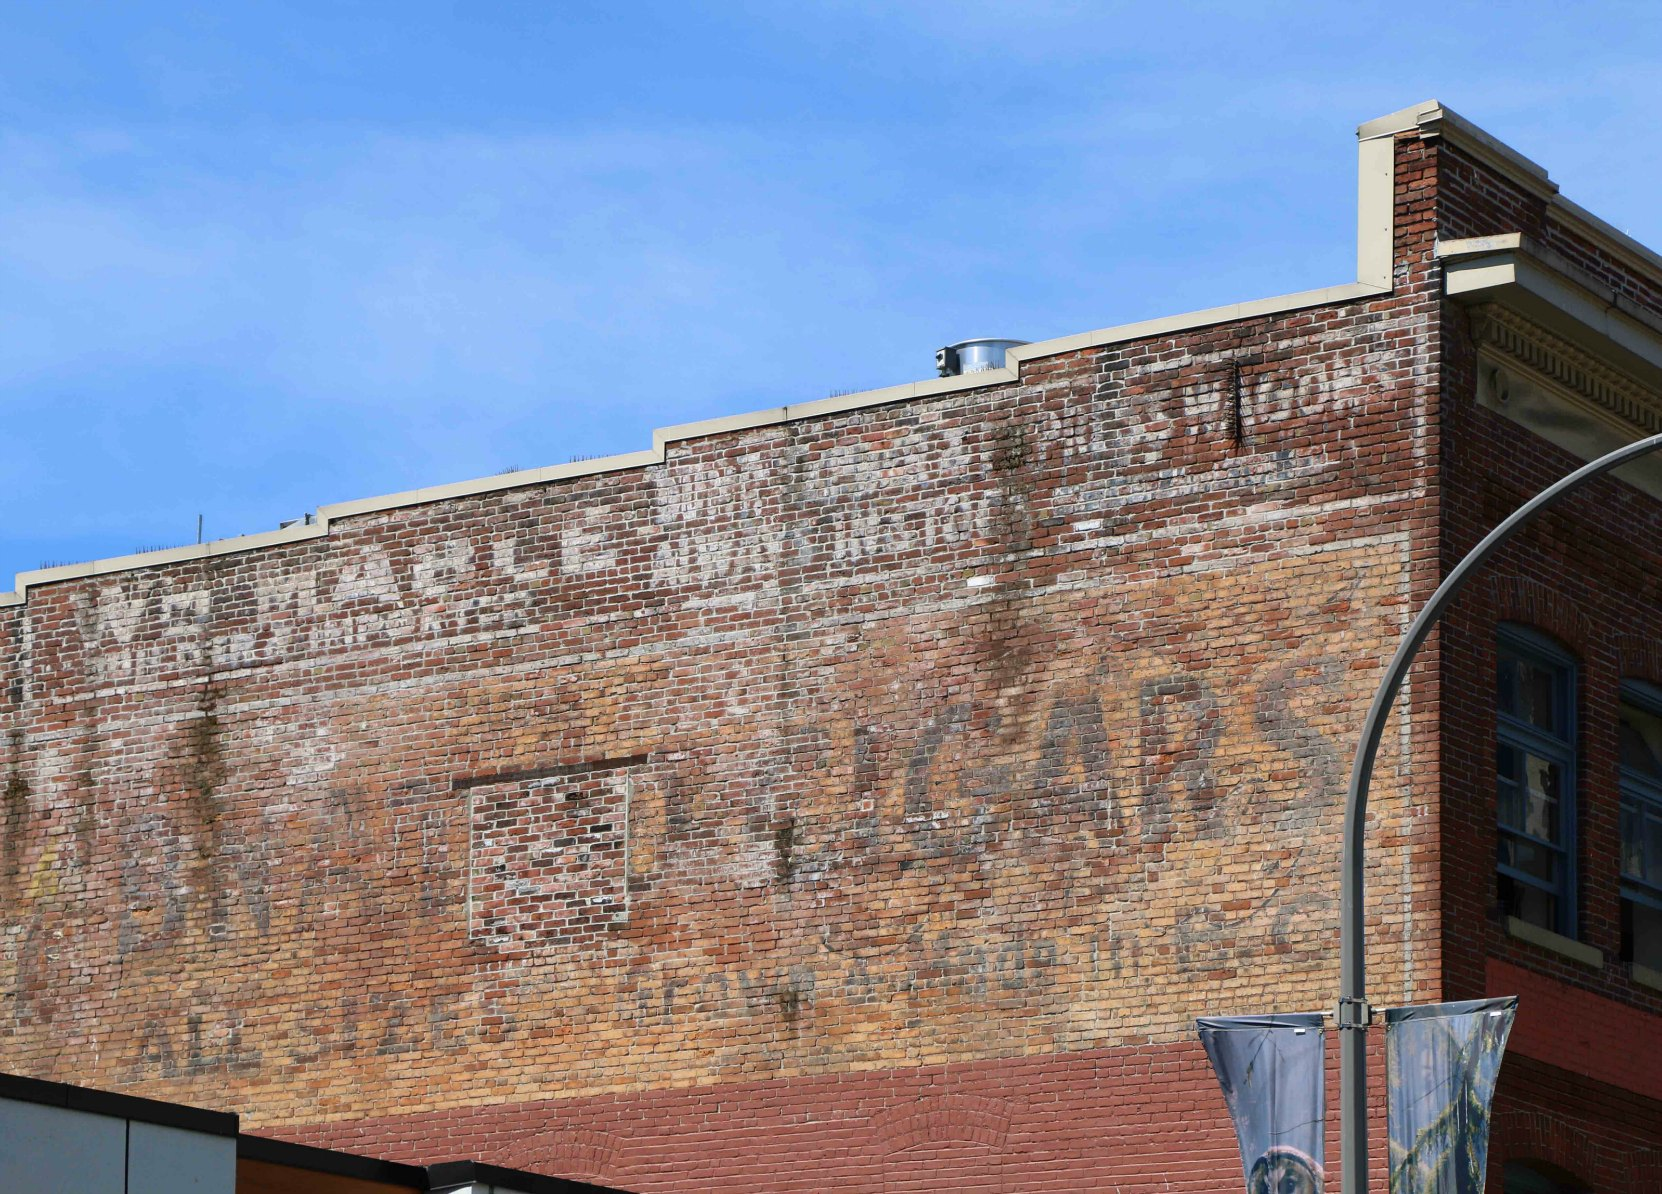 Signs for William Mable's carriage making business are still visible on the east wall of 713-715 Johnson Street, Victoria, B.C. ,built in 1908 by architects Thomas Hooper and C. Elwood Watkins for carriage maker William James Mable, a member of Victoria-Columbia Lodge No.1 (photo by Temple Lodge No. 33 Historian)